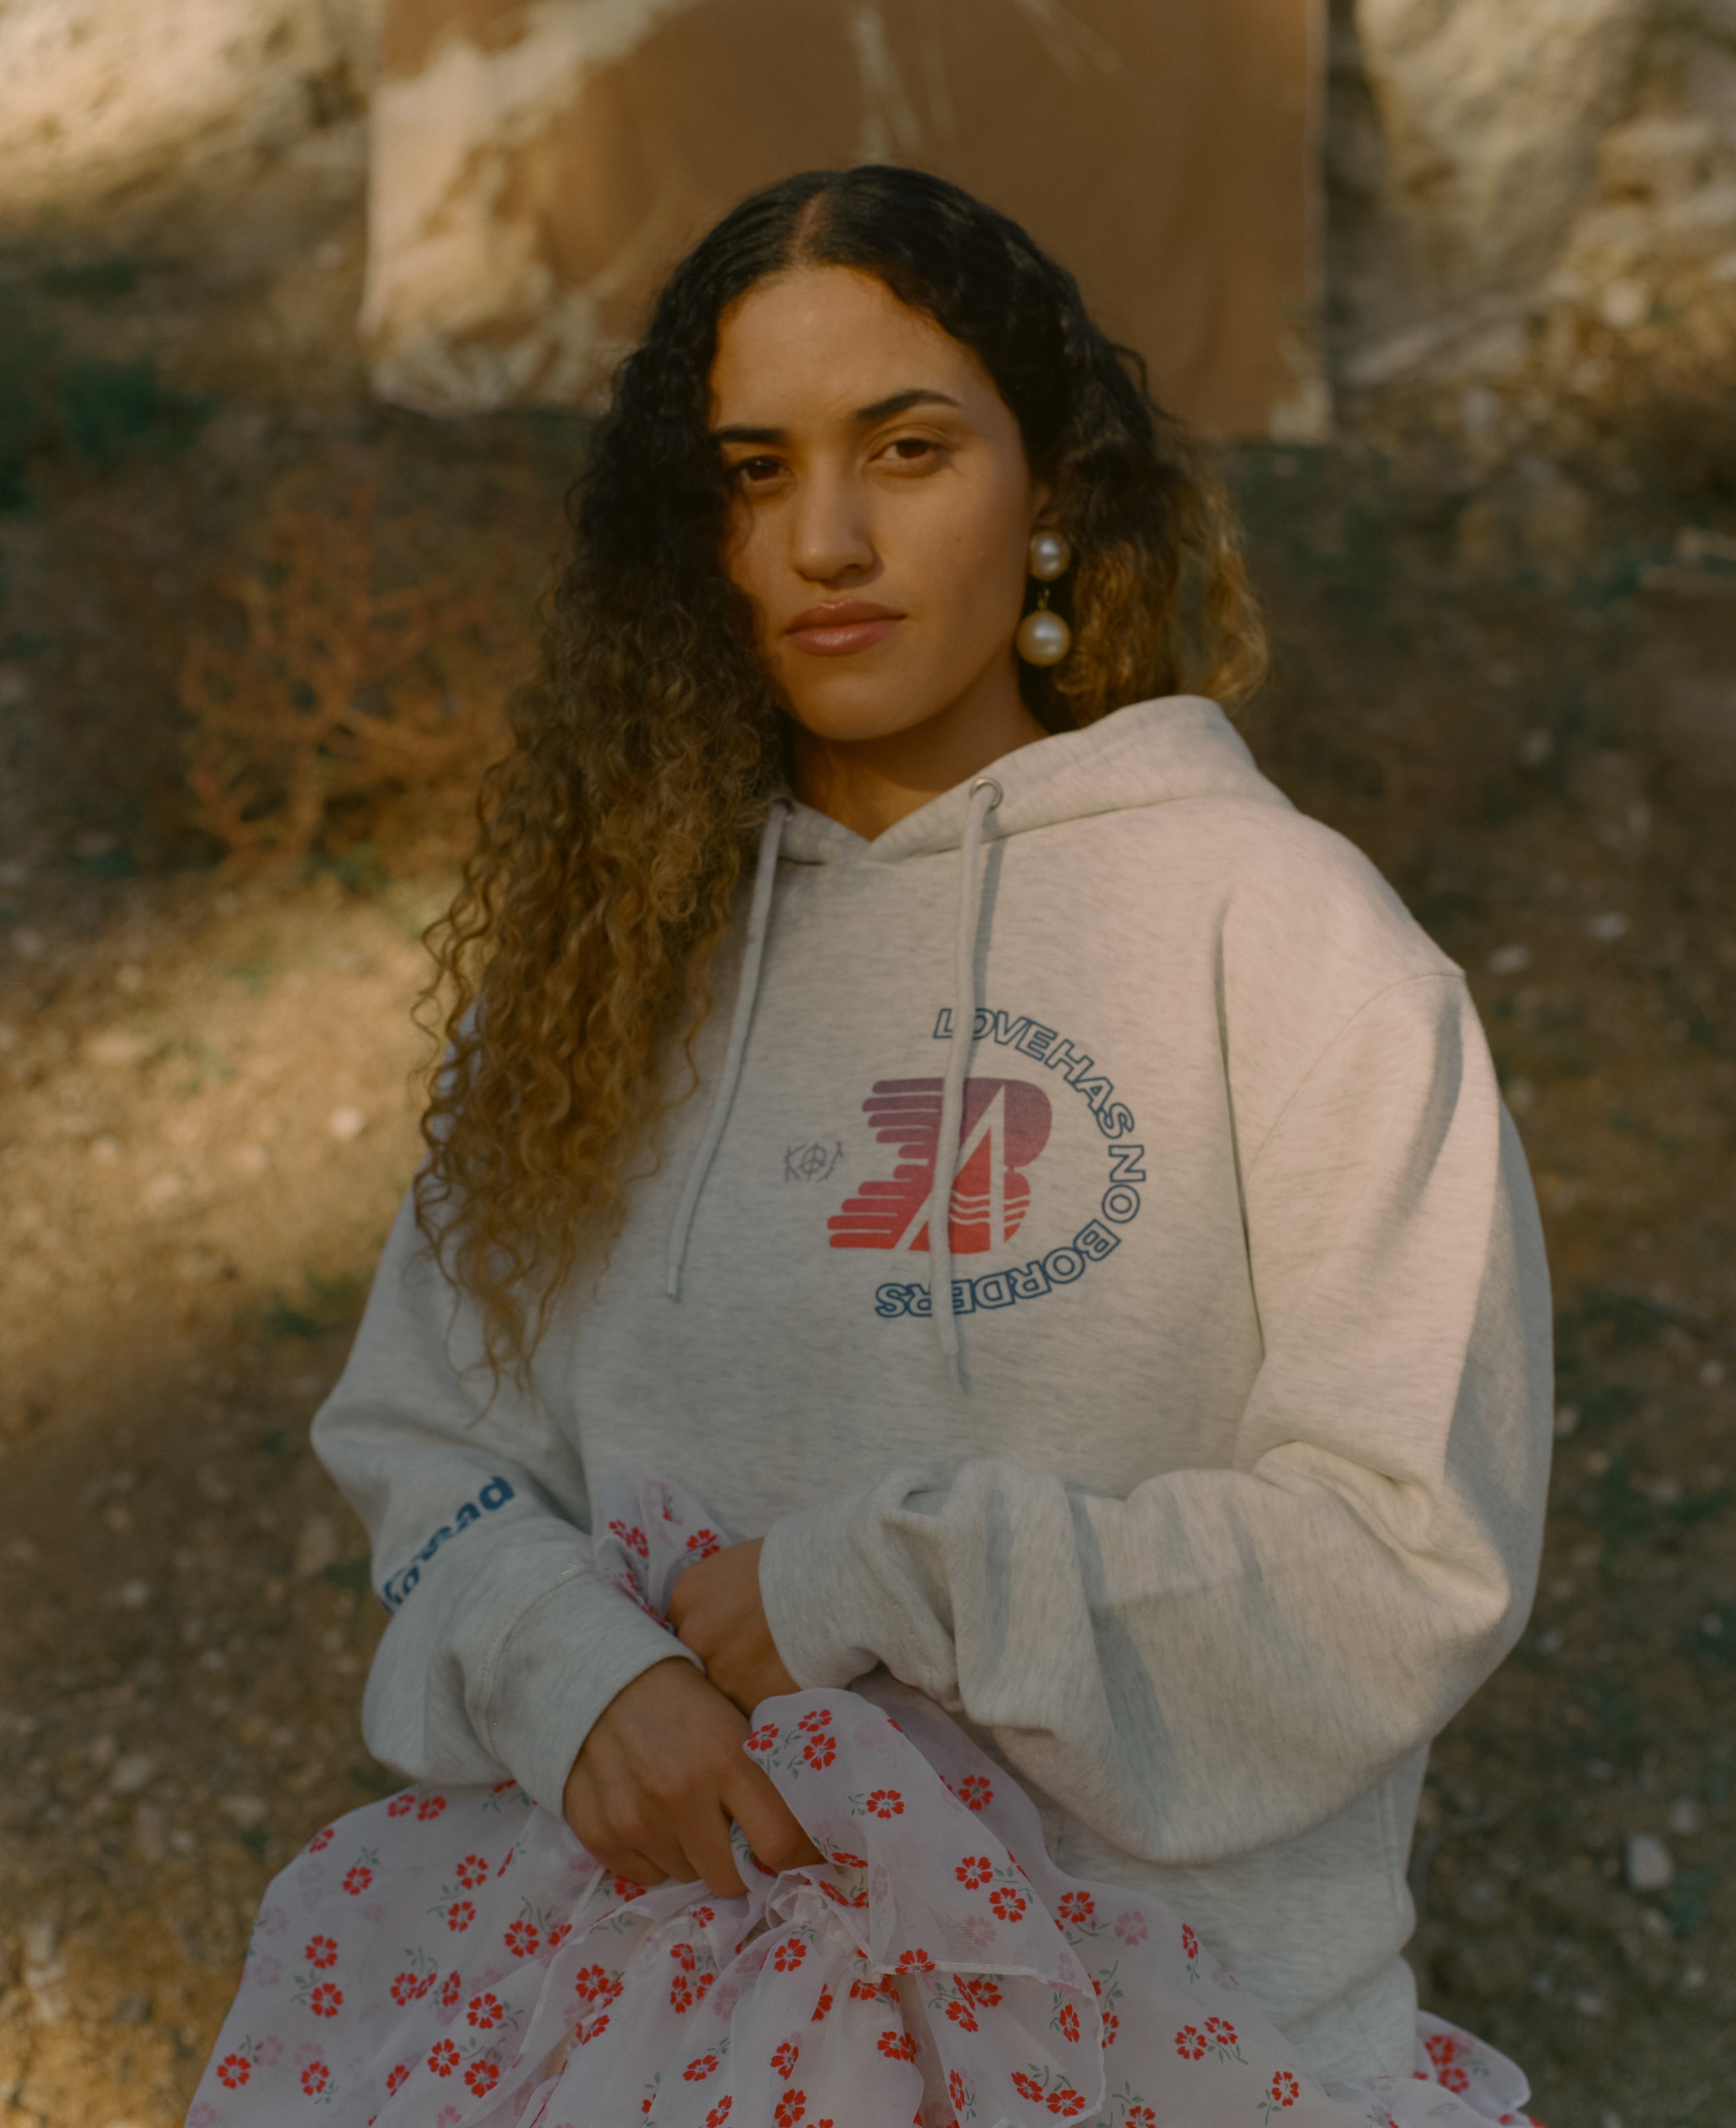 Musician Empress Of stars in the campaign for the Kids of Immigrants x Border Angels hoodie. One hundred percent of the sales will be donated to help migrants in shelters at the U.S.-Mexico border.